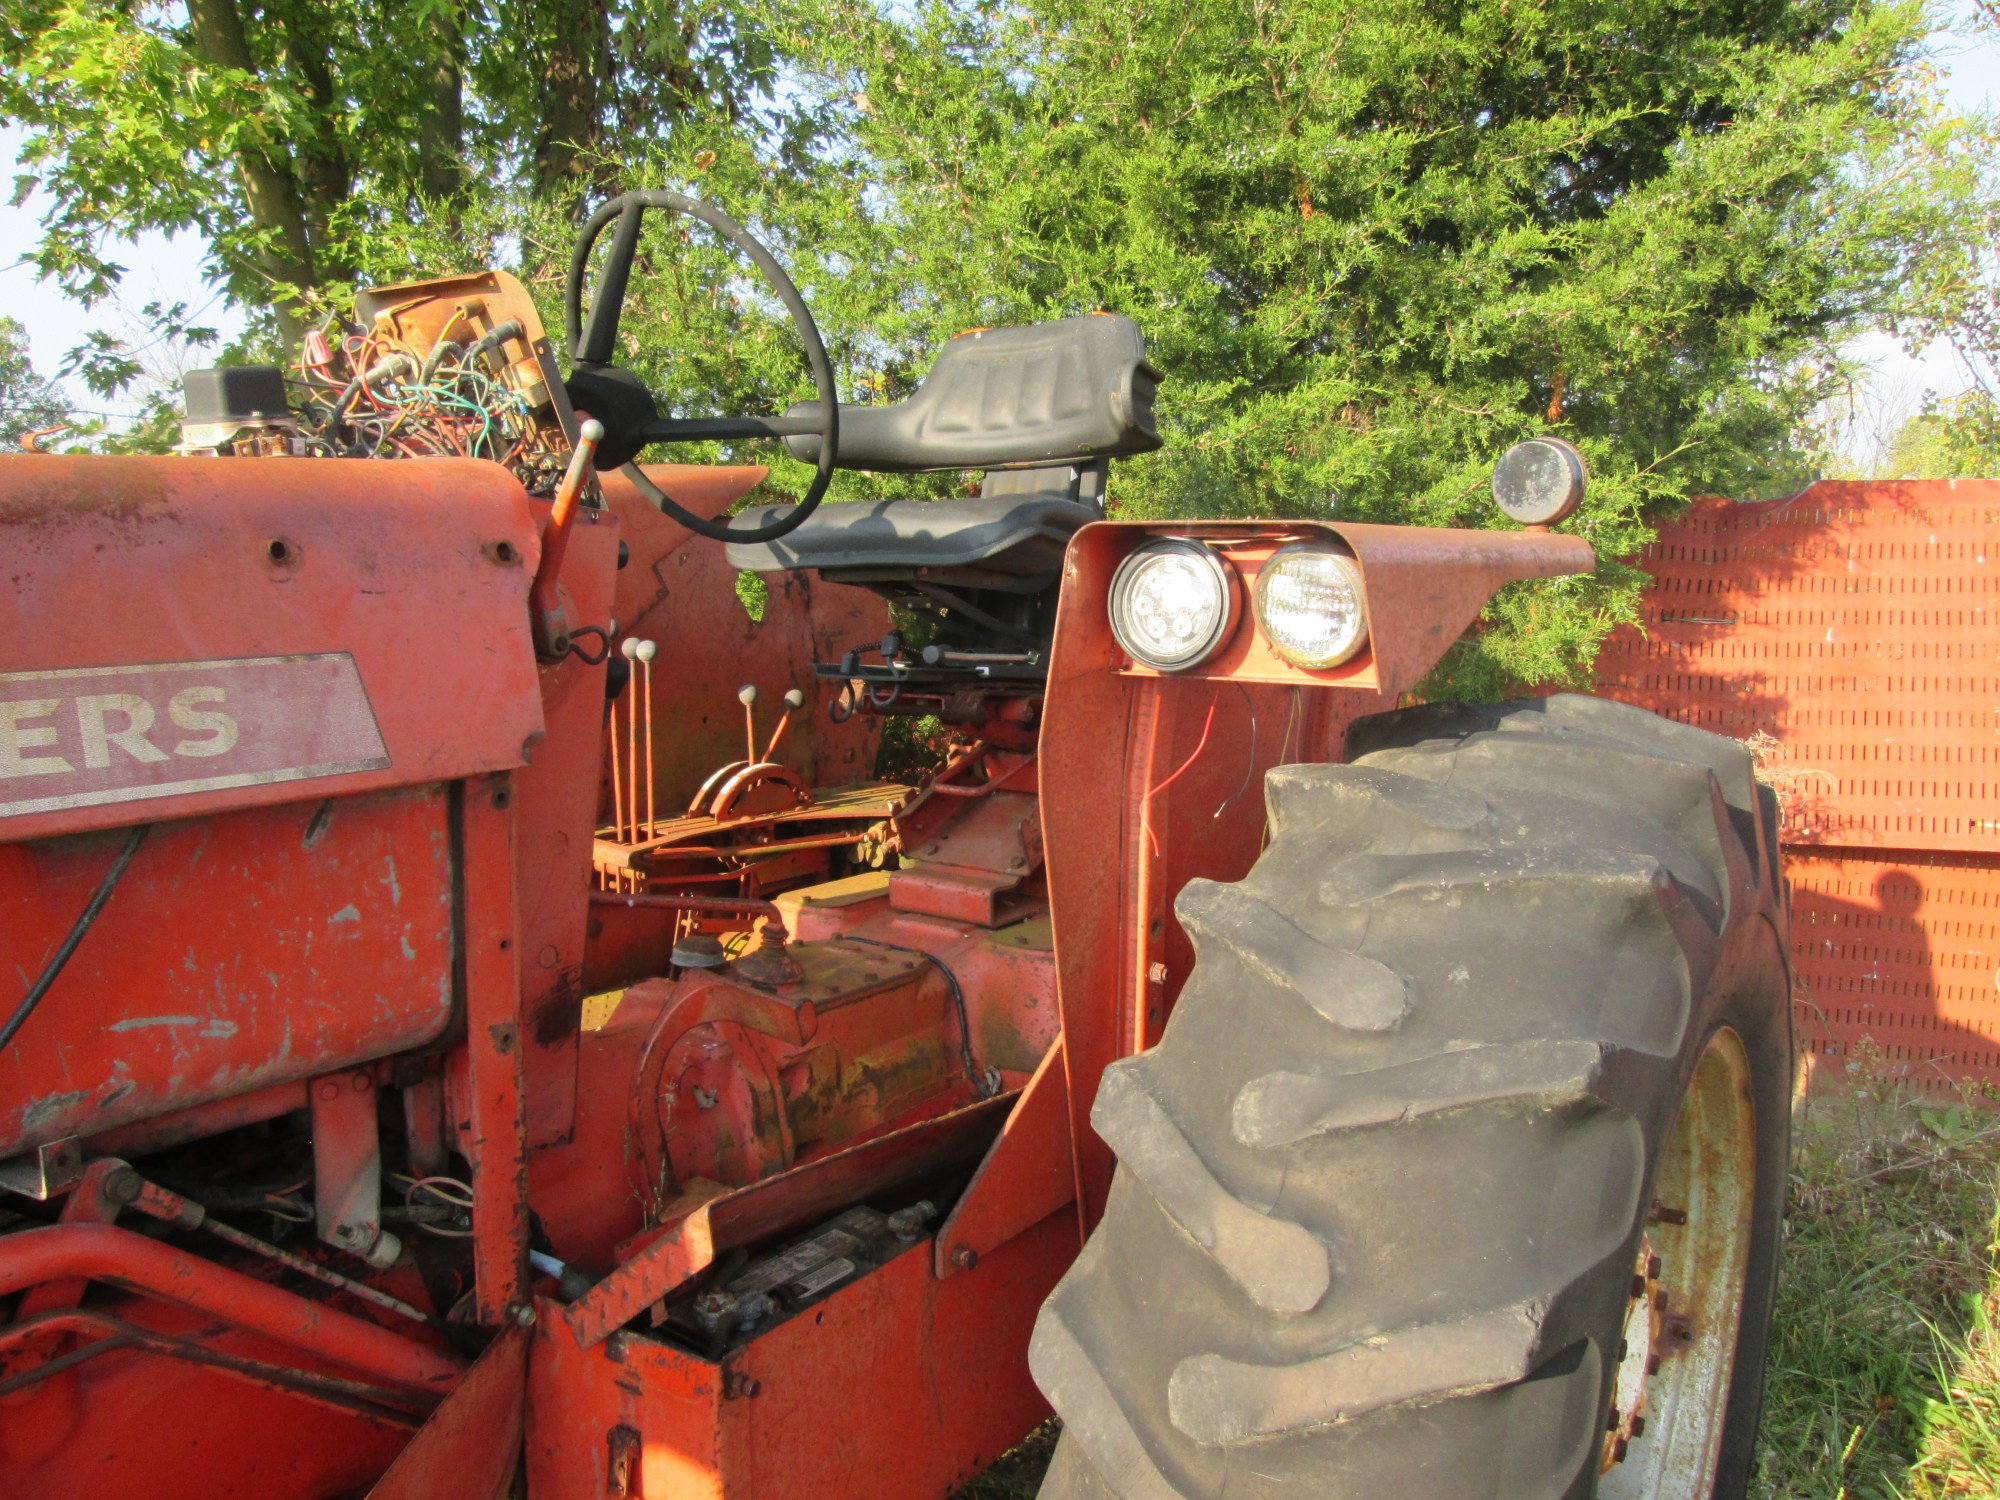 hight resolution of allis chalmers tractor led fender light 160 170 175 180 185 190 200allis chalmers tractor led